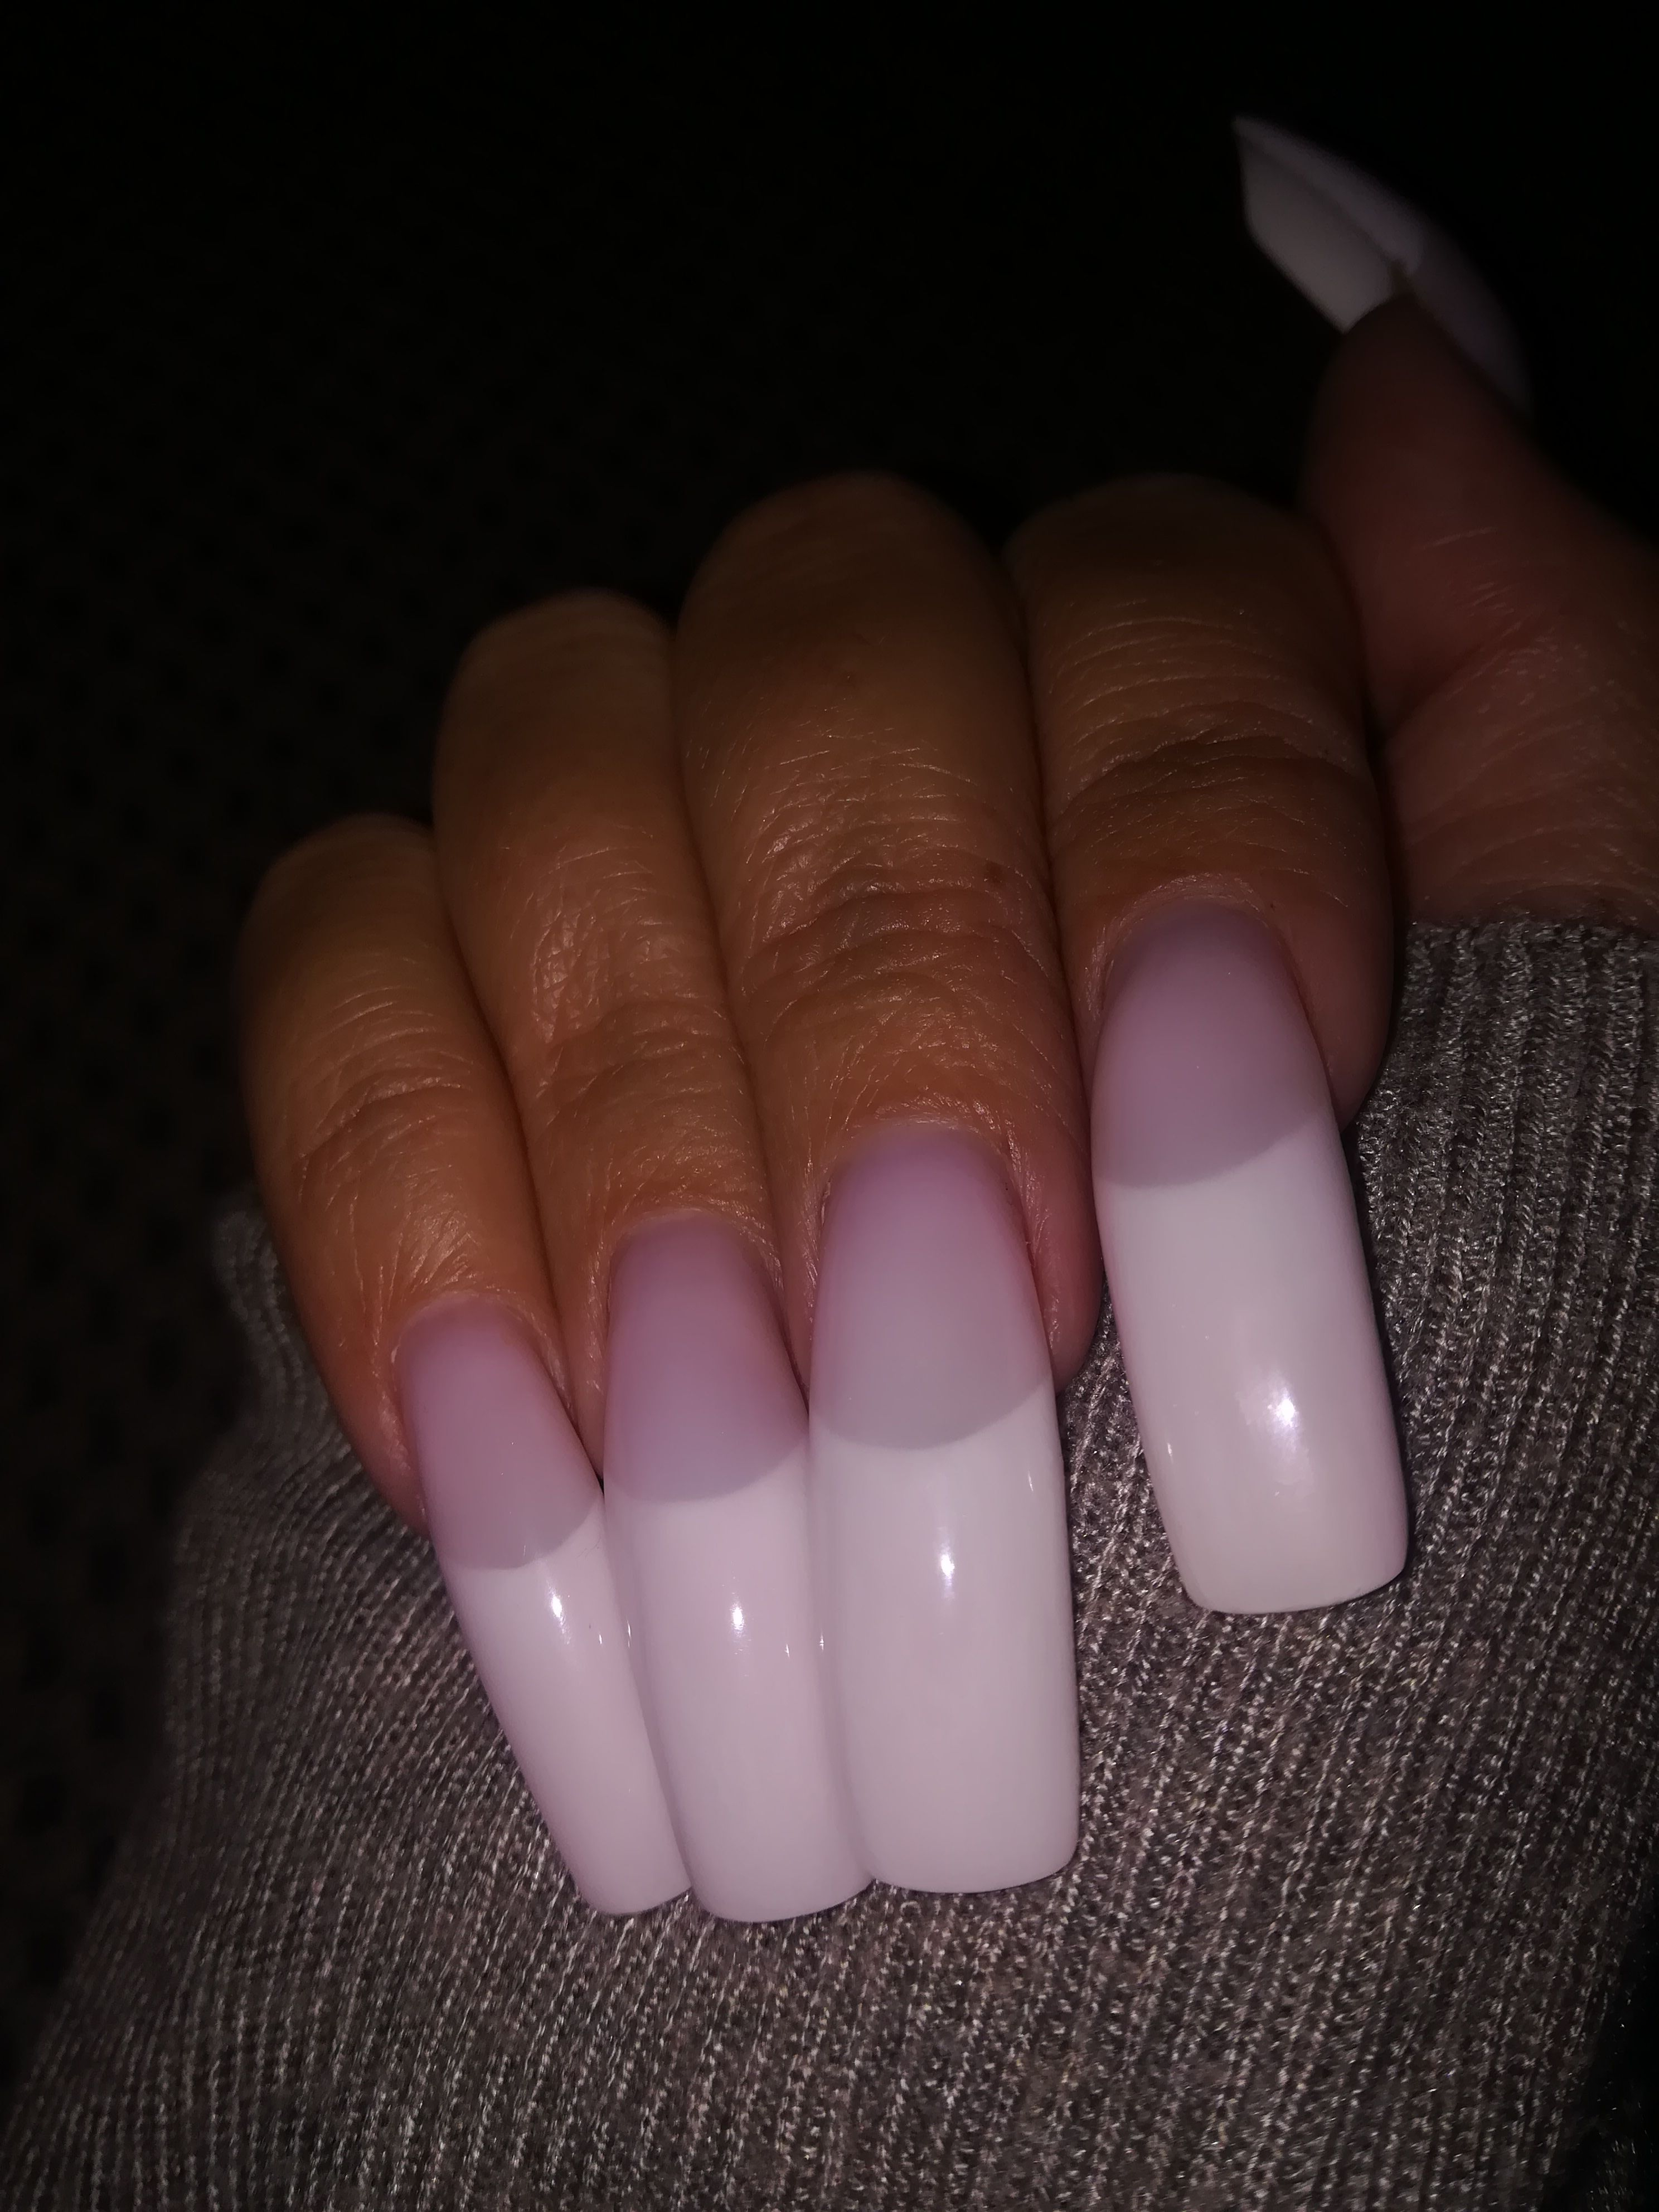 Long french nails | Long, long nails.... | Pinterest | Long french ...